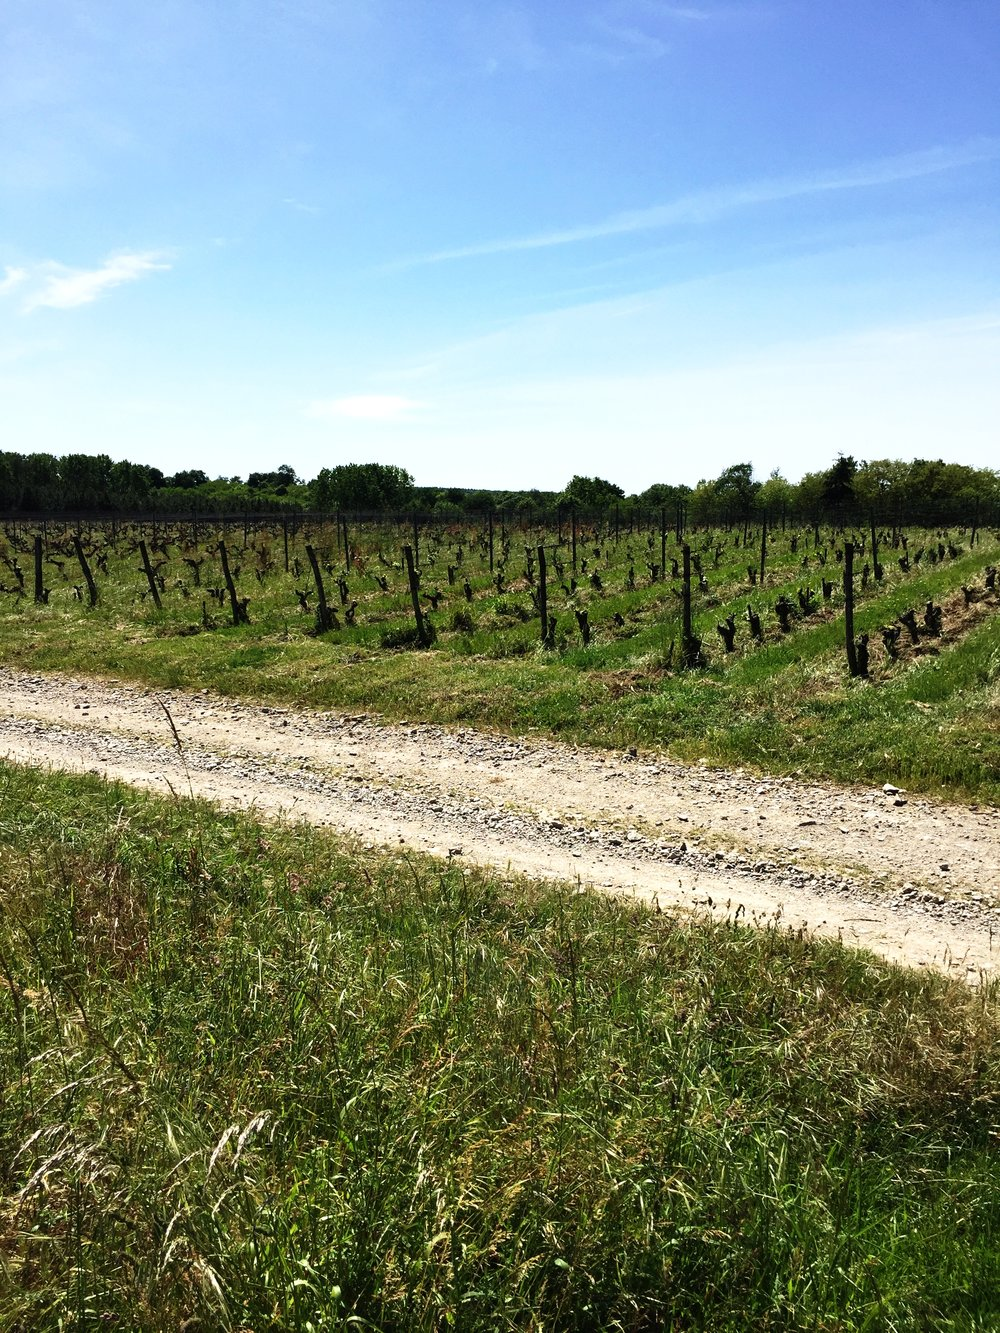 Check out the grass between the rows of vines